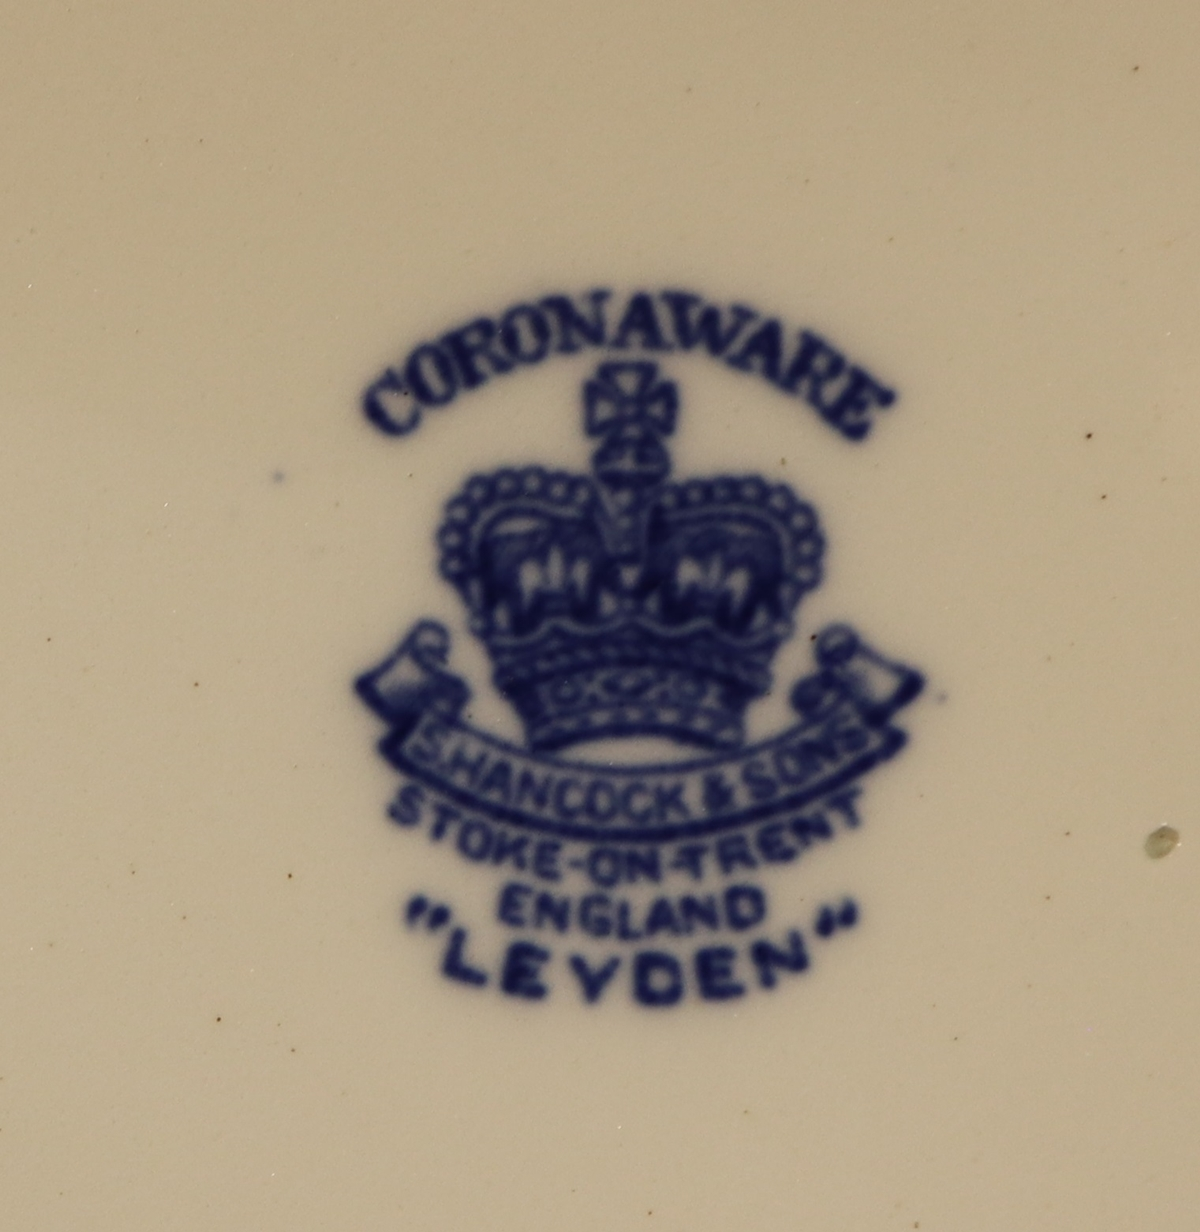 Large collection of blue & white Coronaware - Leyden pattern - Image 2 of 6